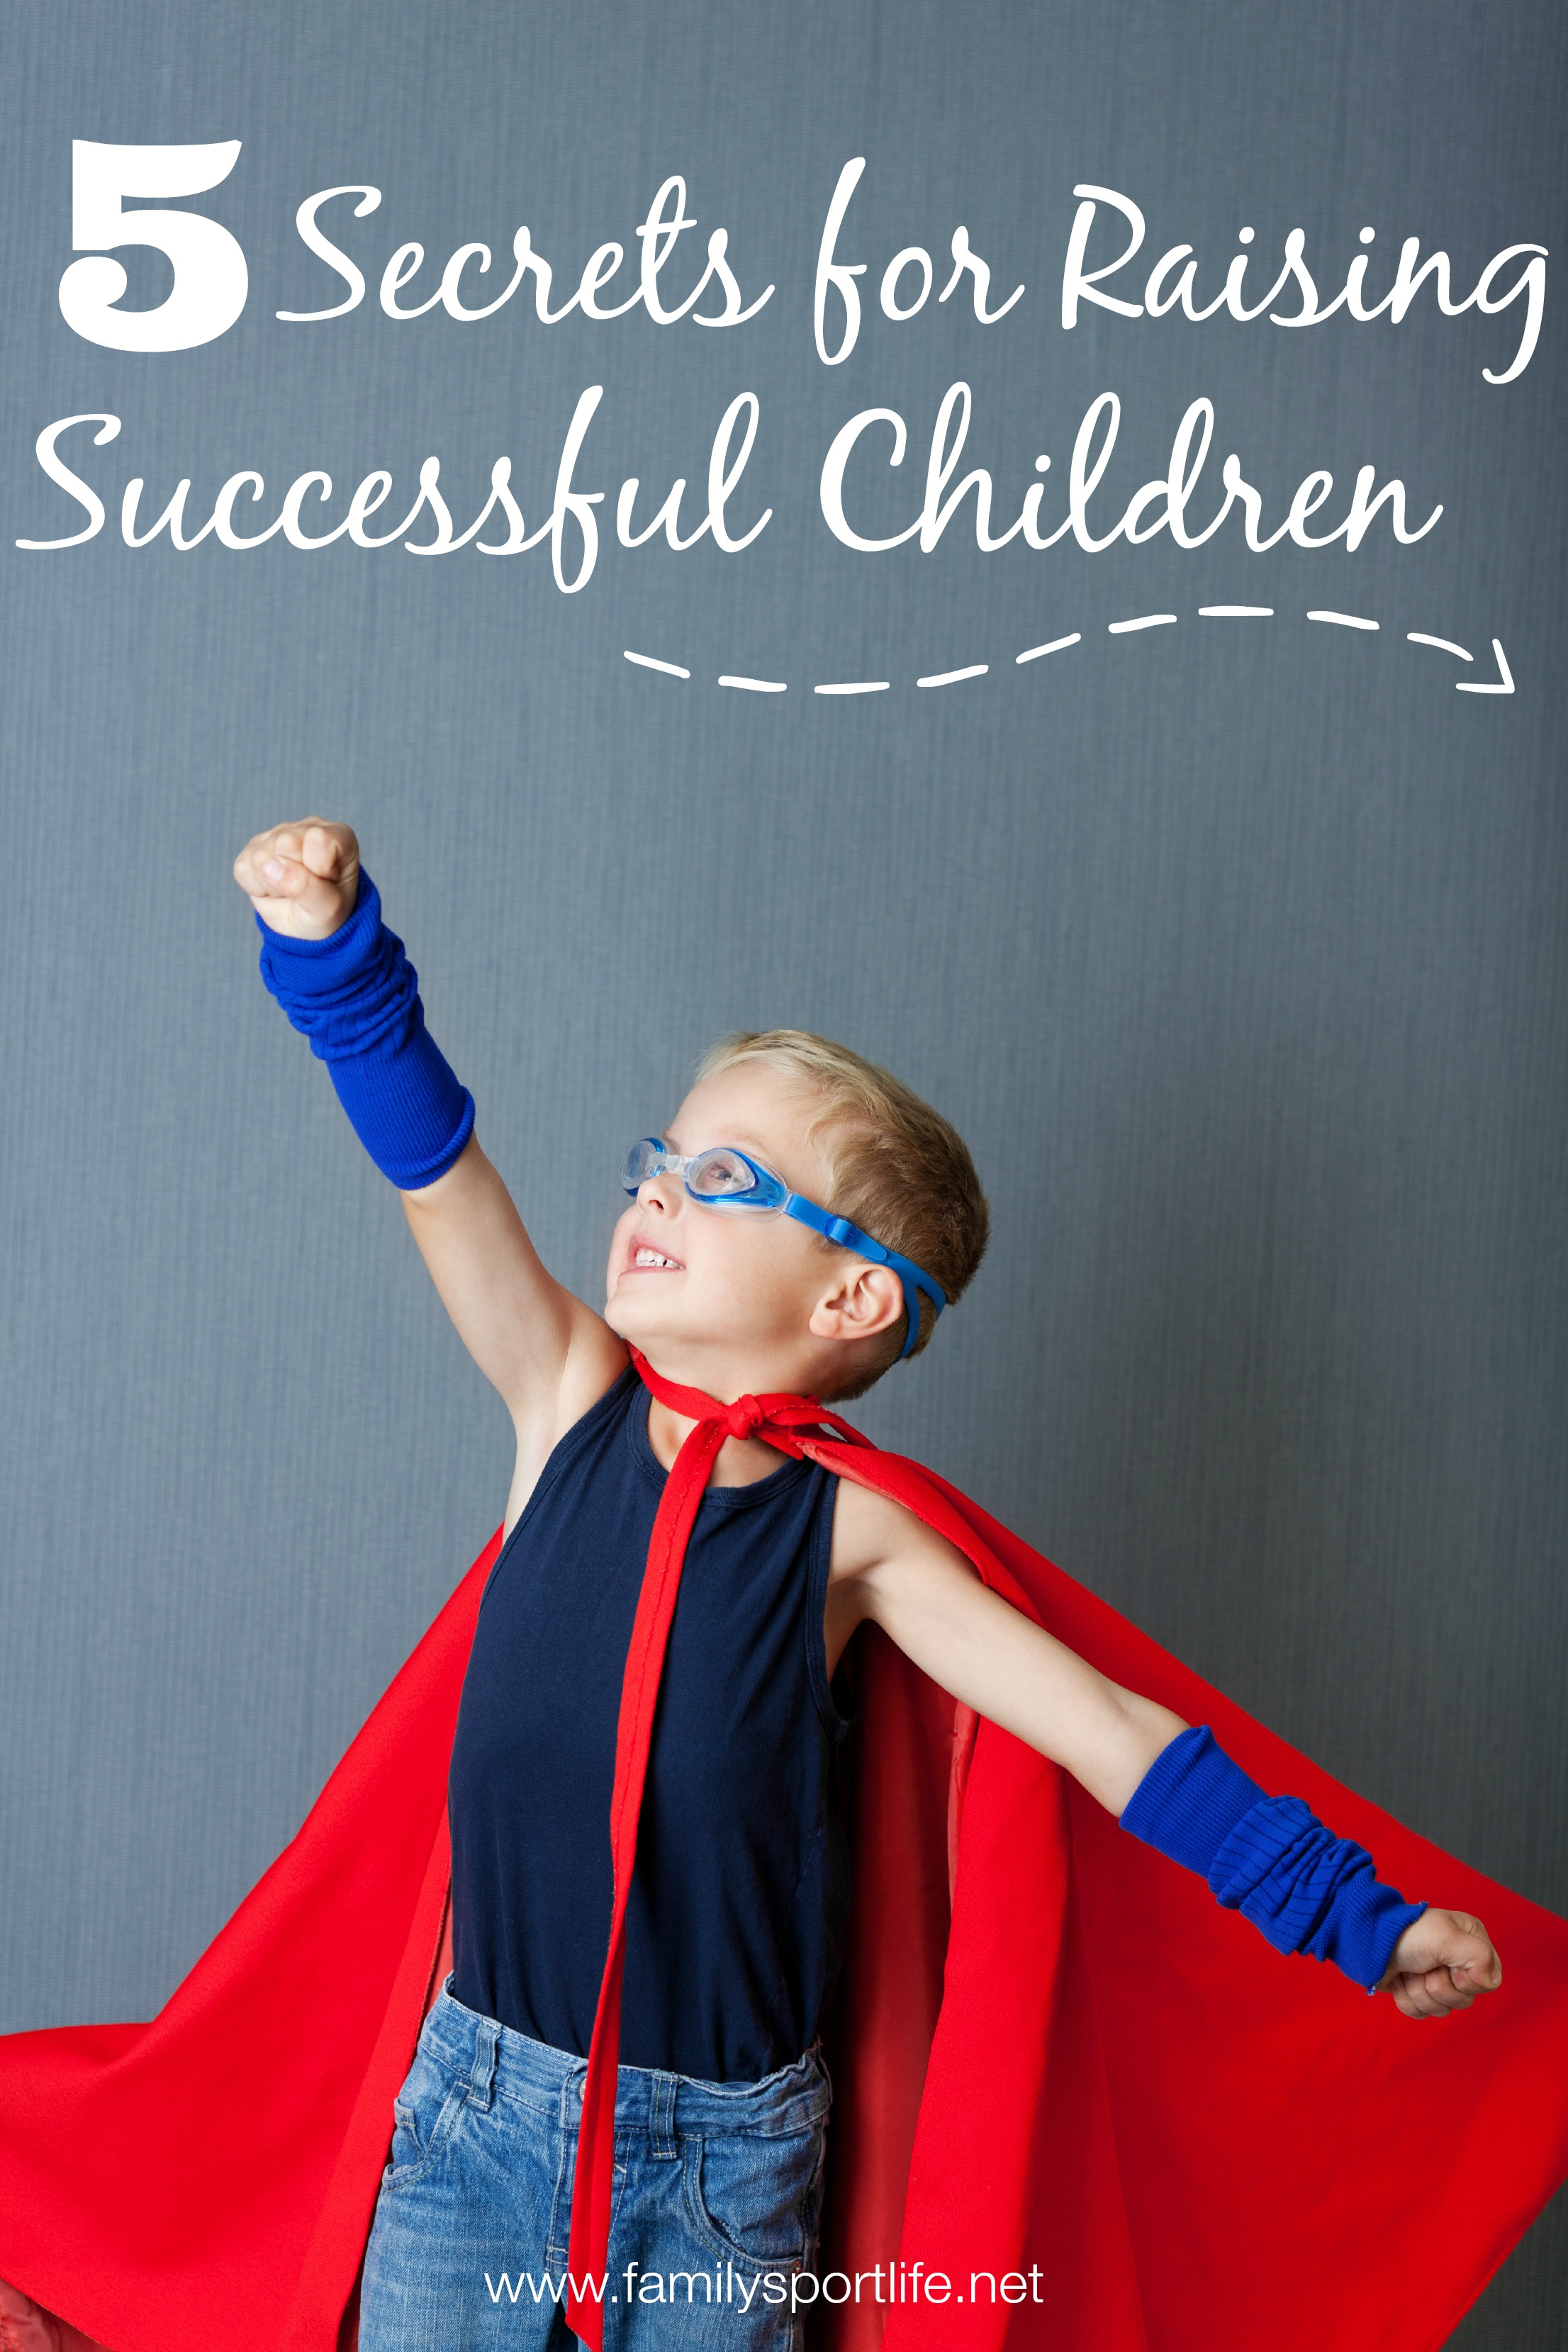 5 Secrets for Raising Successful Children via @familsyportlife